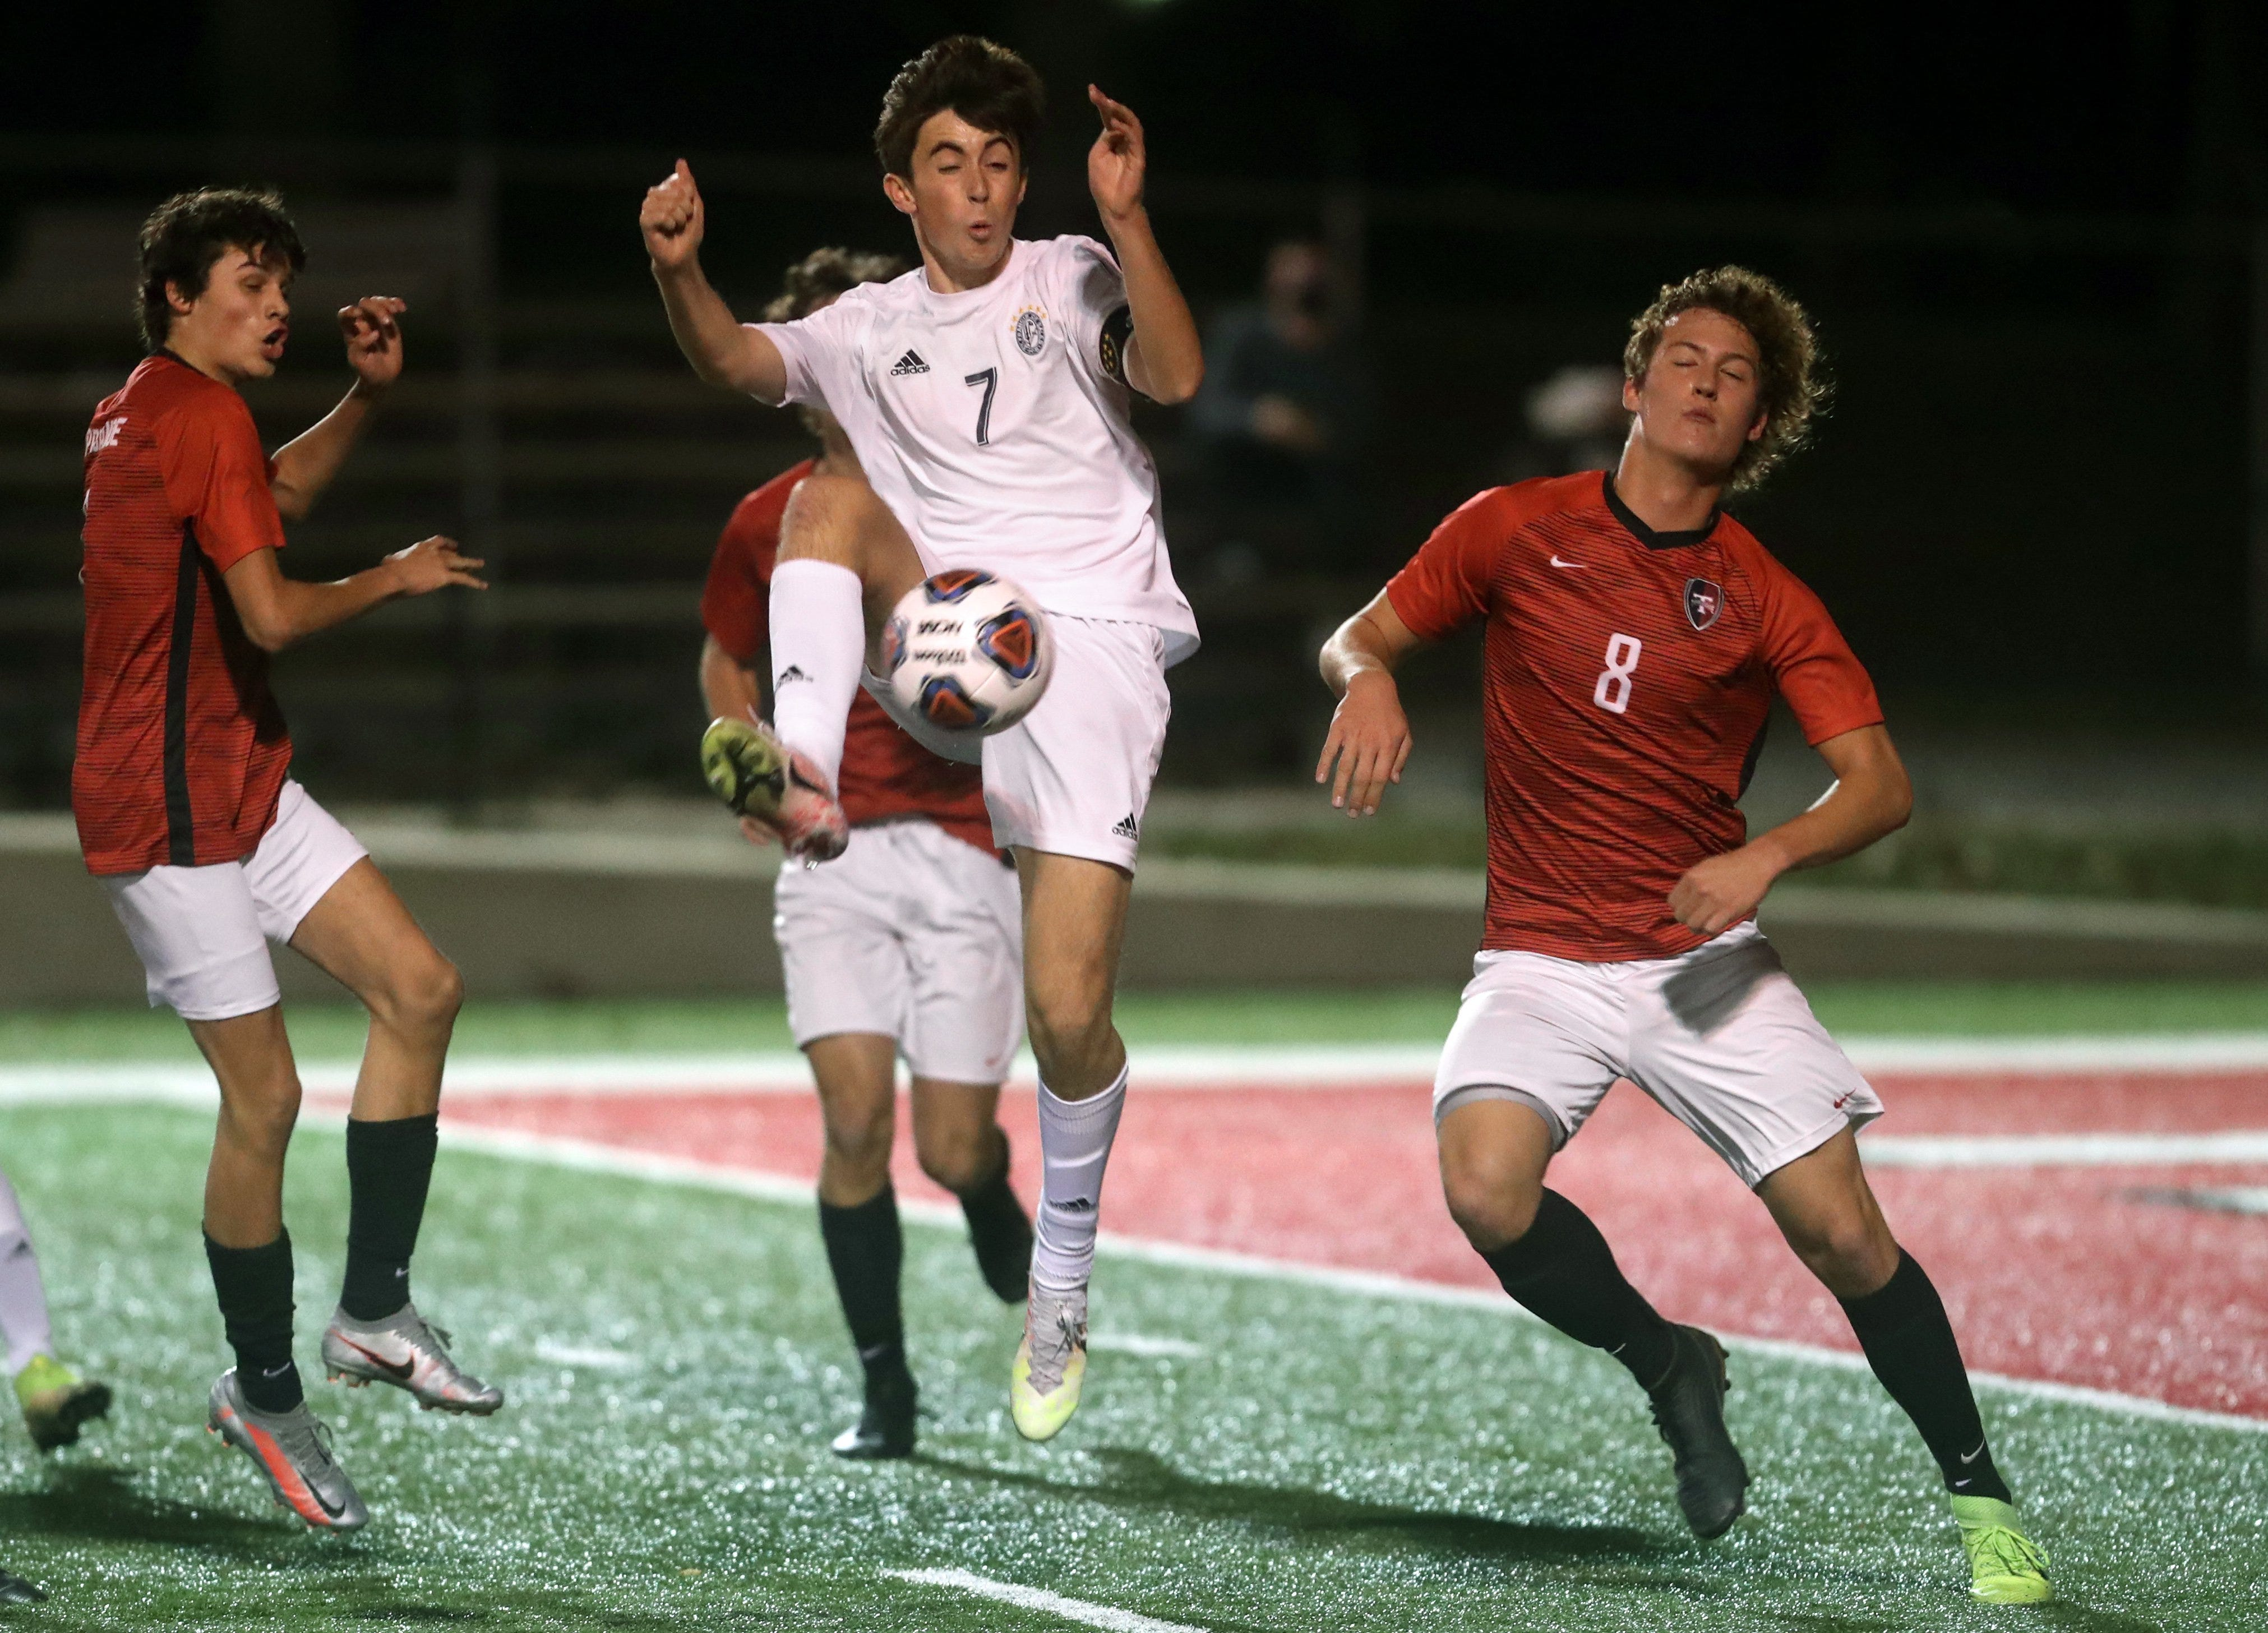 DeSales' Andrew Shaffer leaps to kick the ball away from Tipp City Tippecanoe's Jonny Baileys (8) during a Division II regional semifinal Nov. 4, 2020, at Red Devil Stadium in Tipp City, Ohio.